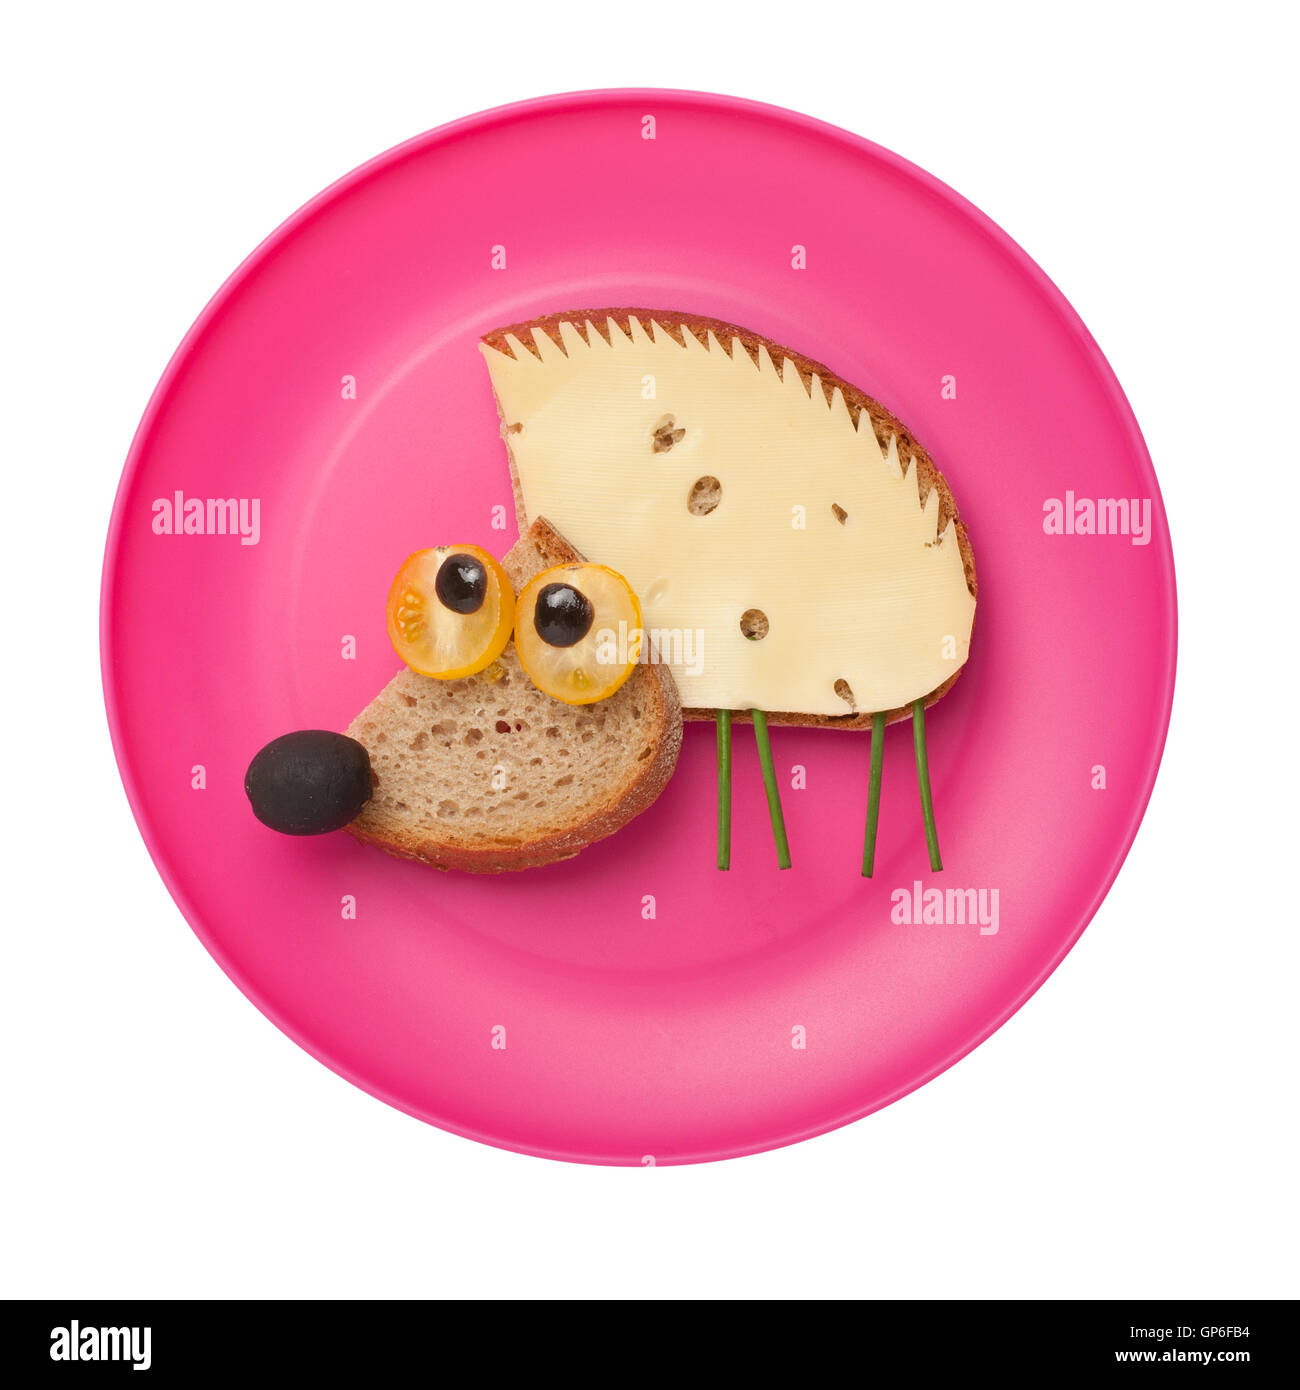 Amusing hedgehog made of bread and cheese on plate - Stock Image